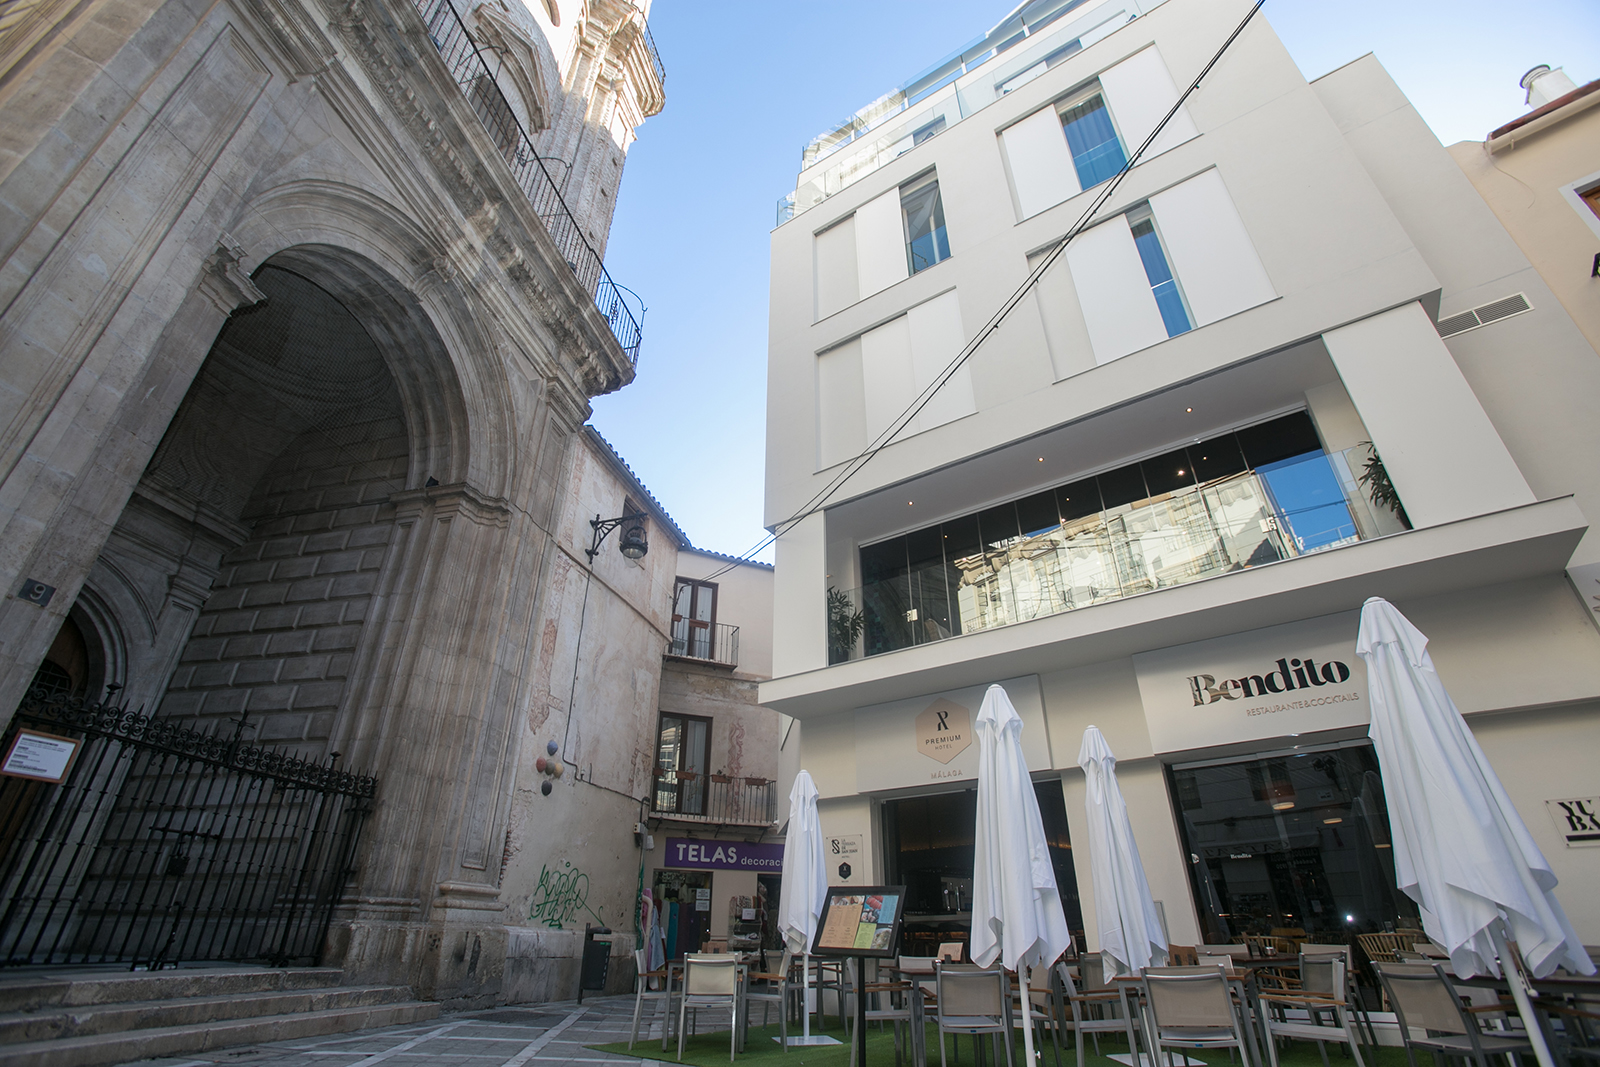 Malaga premium hotel photo gallery our hotel on the for Hotel malaga premium